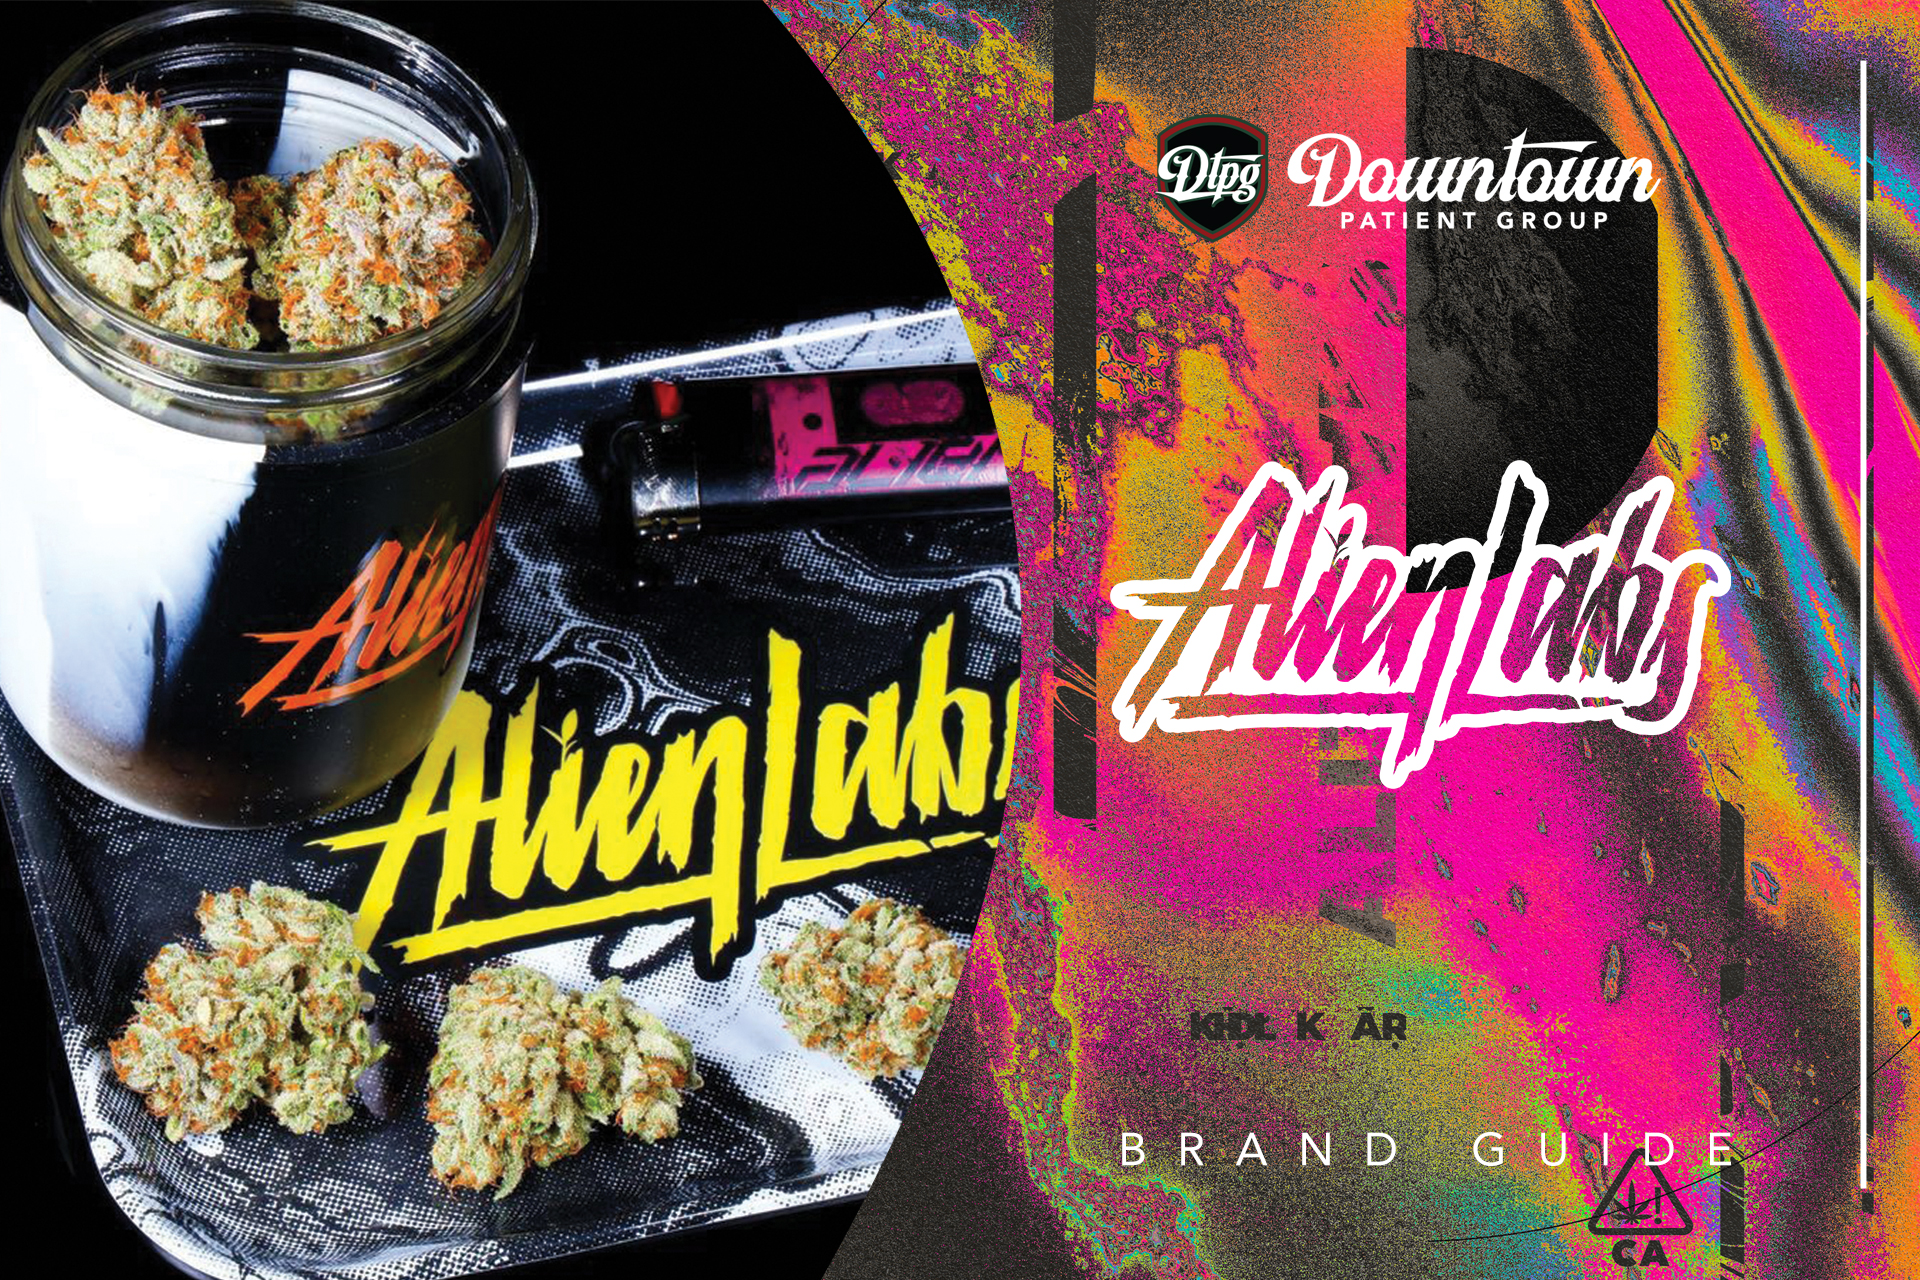 Alien Labs Brand Guide: Top-Shelf Exotic Flower, Pre-Rolls, and Dabs At DTPG